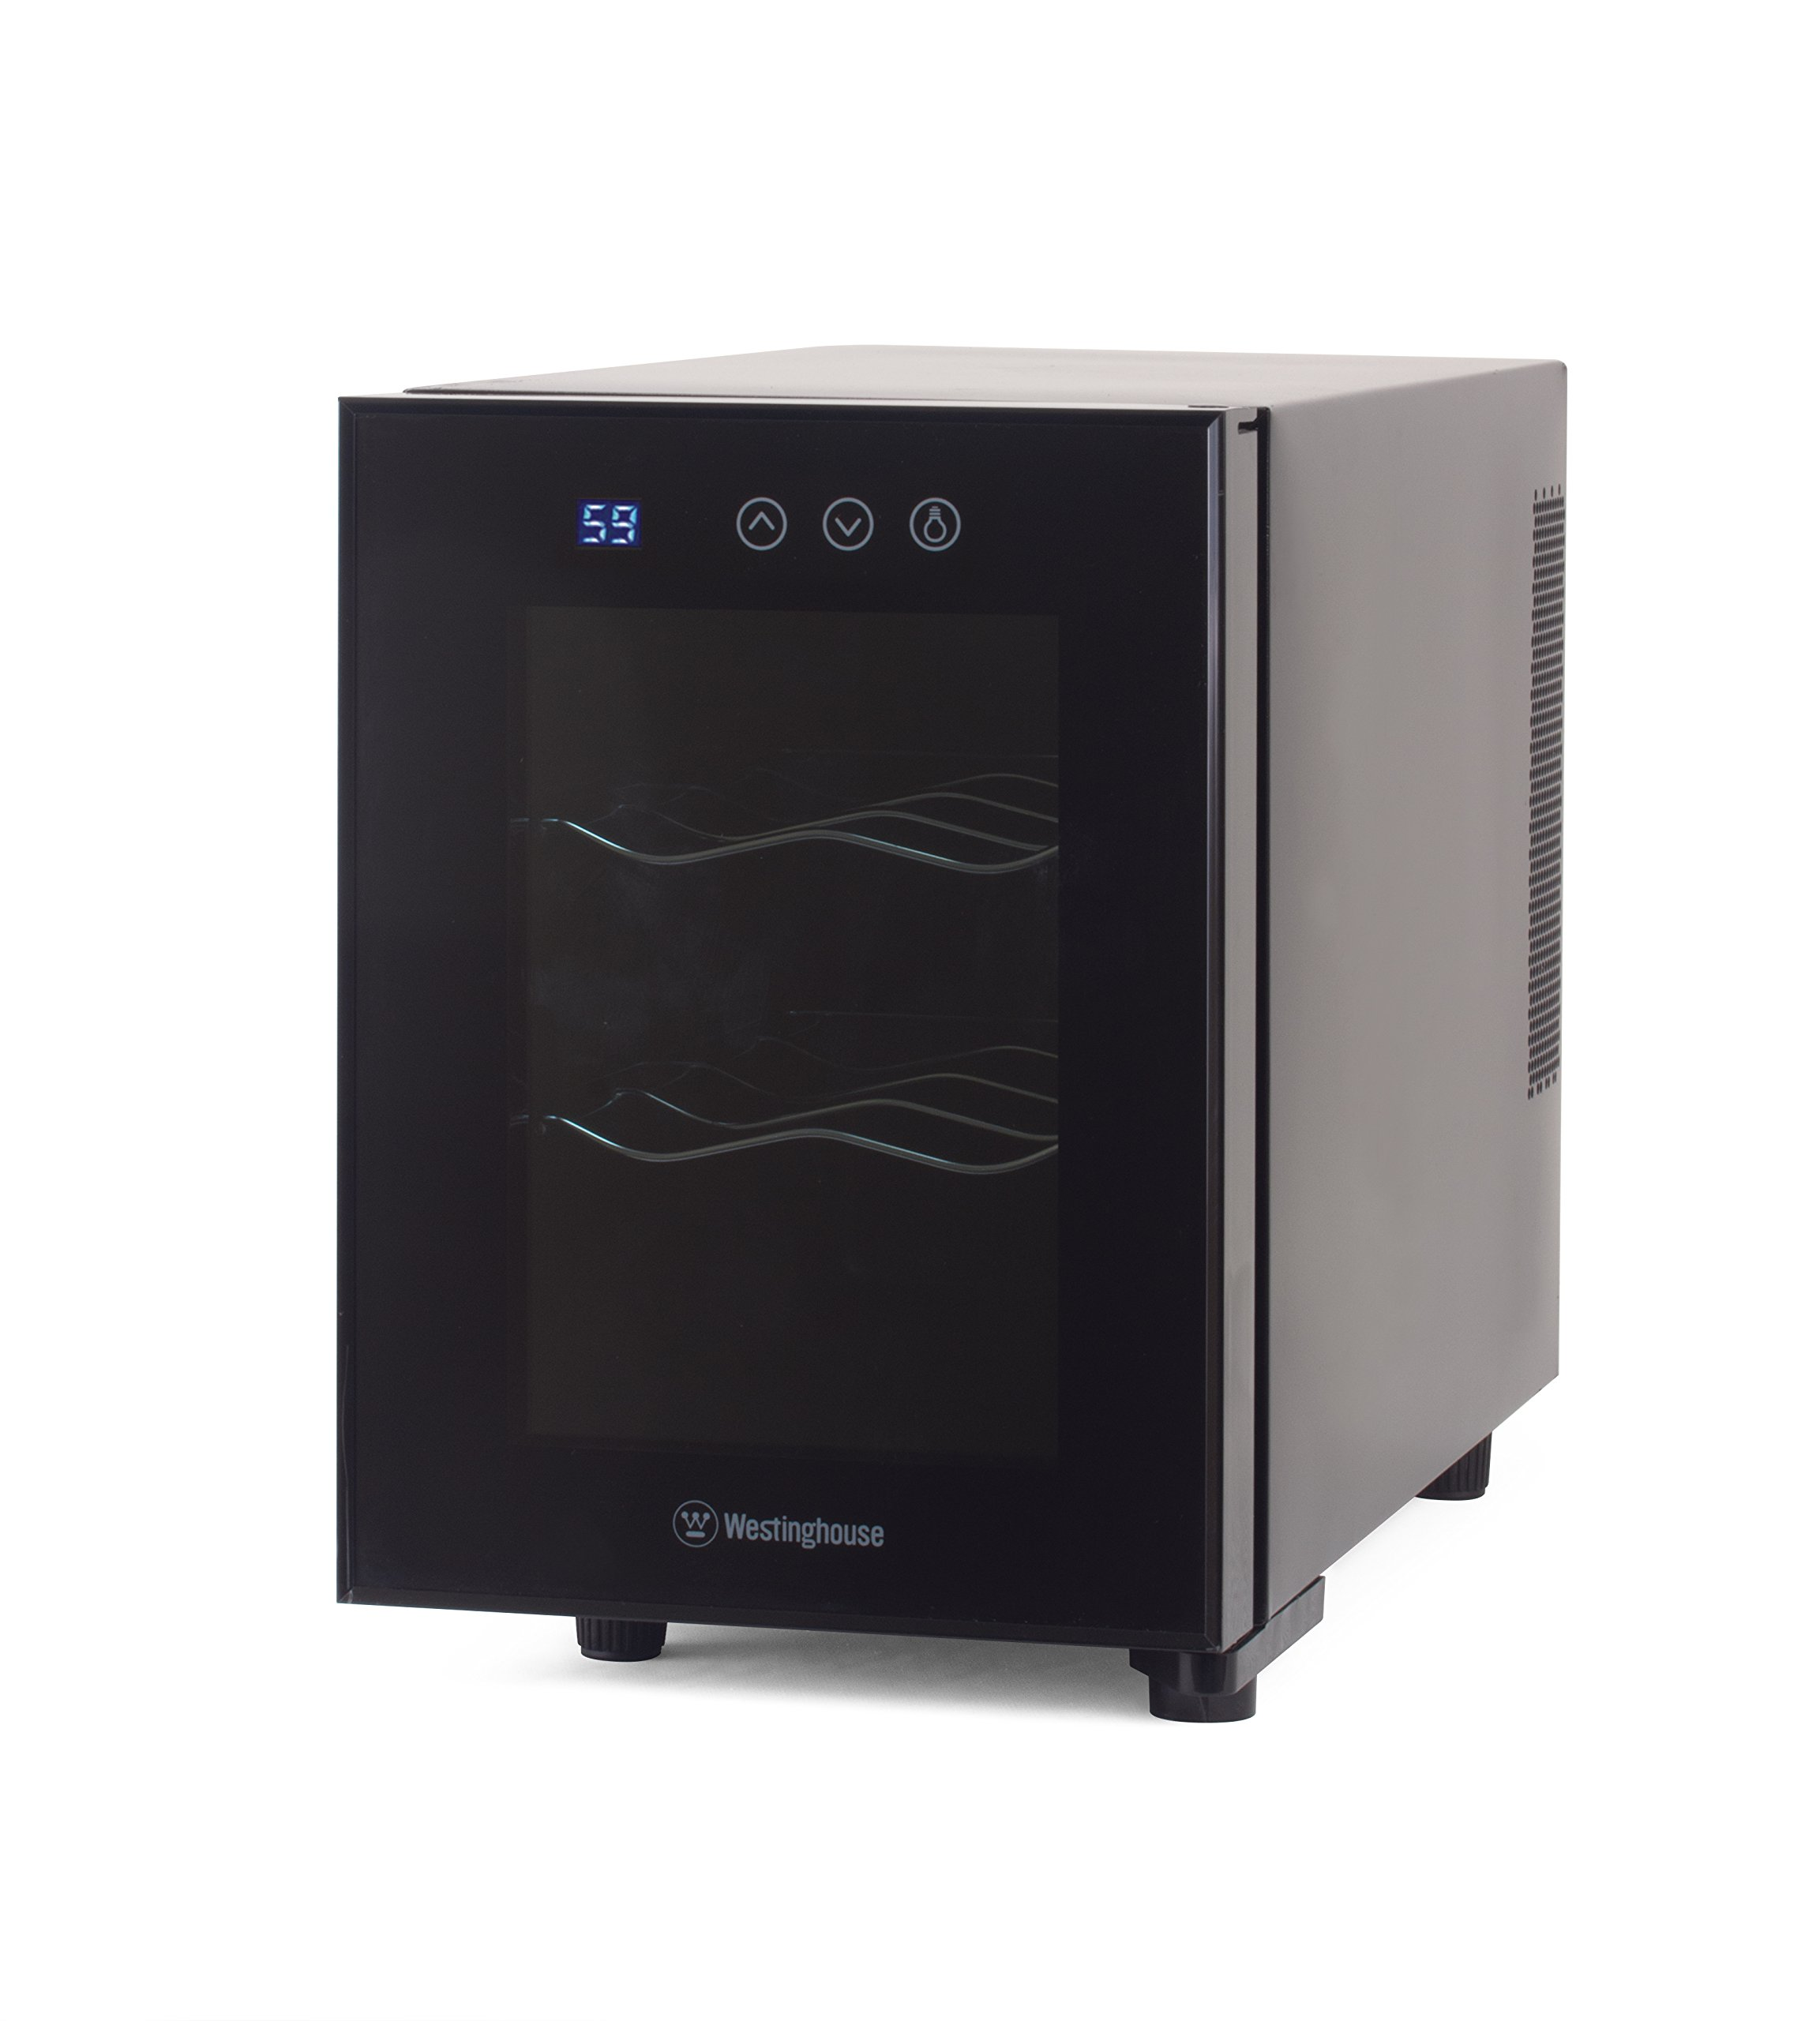 Westinghouse WWT060TB Thermal Electric 6 Bottle Wine Cellar with Touch Panel Adjustable Thermostat and Digital Read Out, Black by Westinghouse